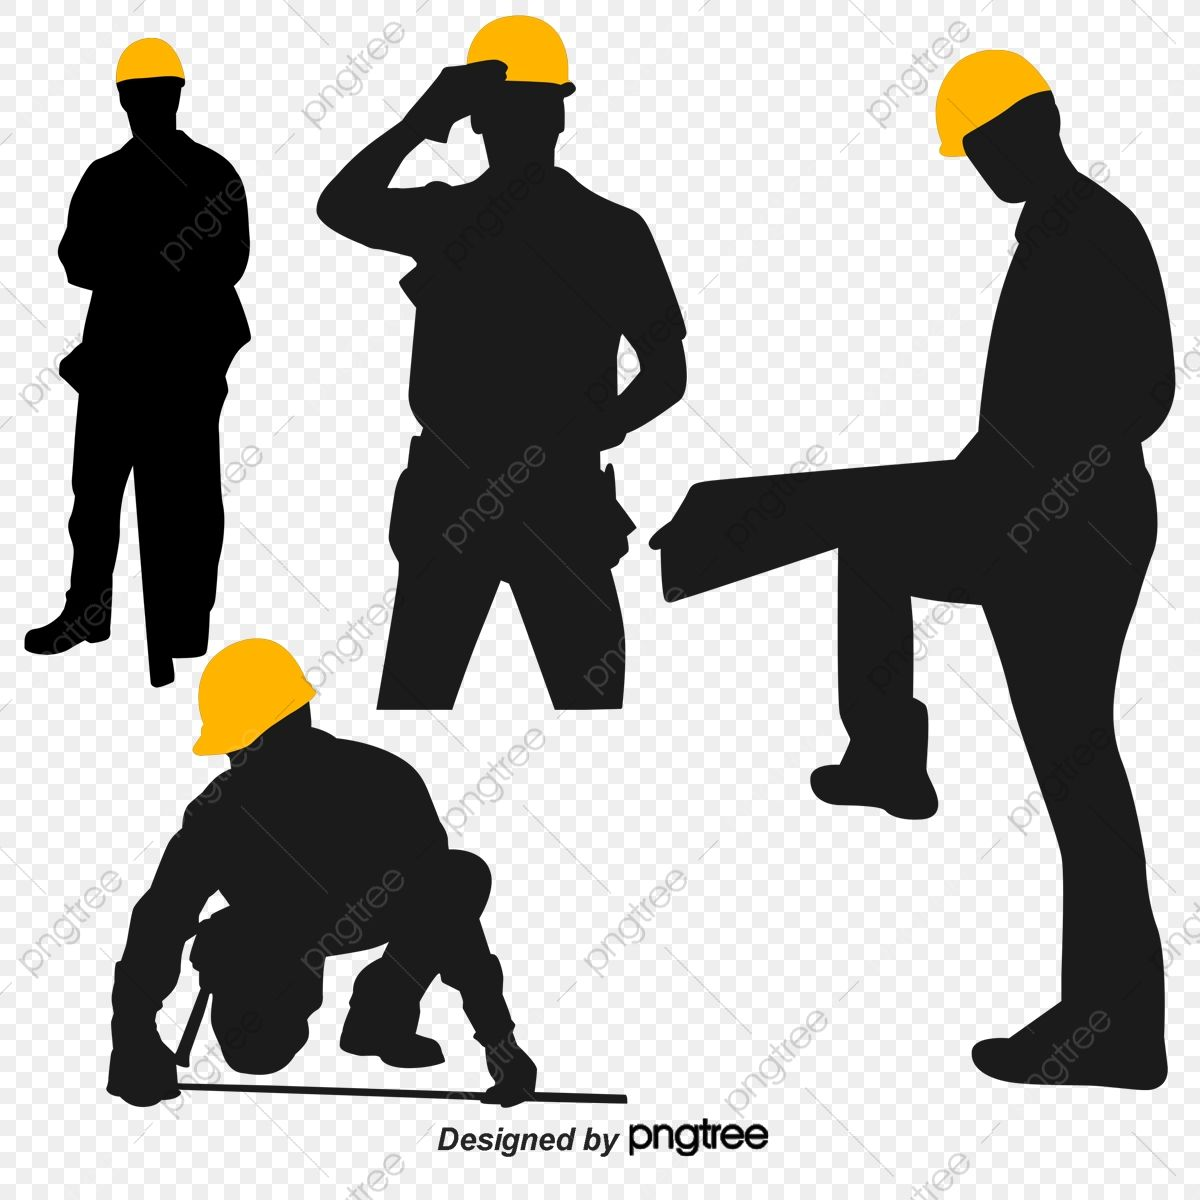 Construction Workers Silhouette Figures Sketch Construction Silhouette Figures Png Transparent Clipart Image And Psd File For Free Download Construction Worker Silhouette Logo Design Free Templates